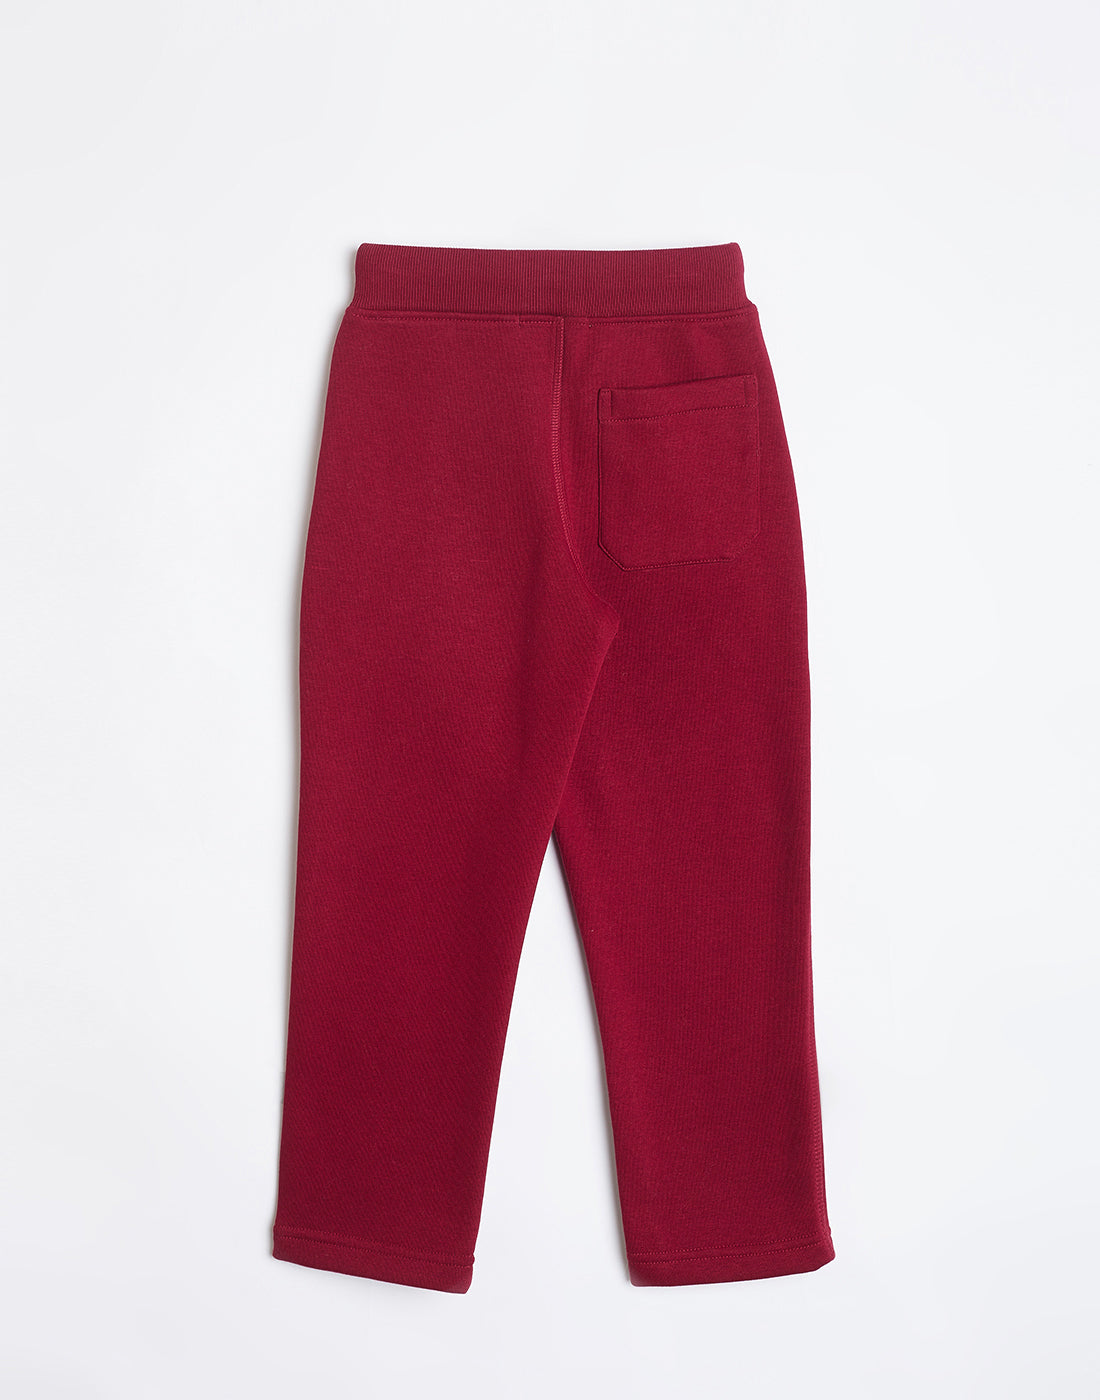 Octave Boys Salsa Red Track pants